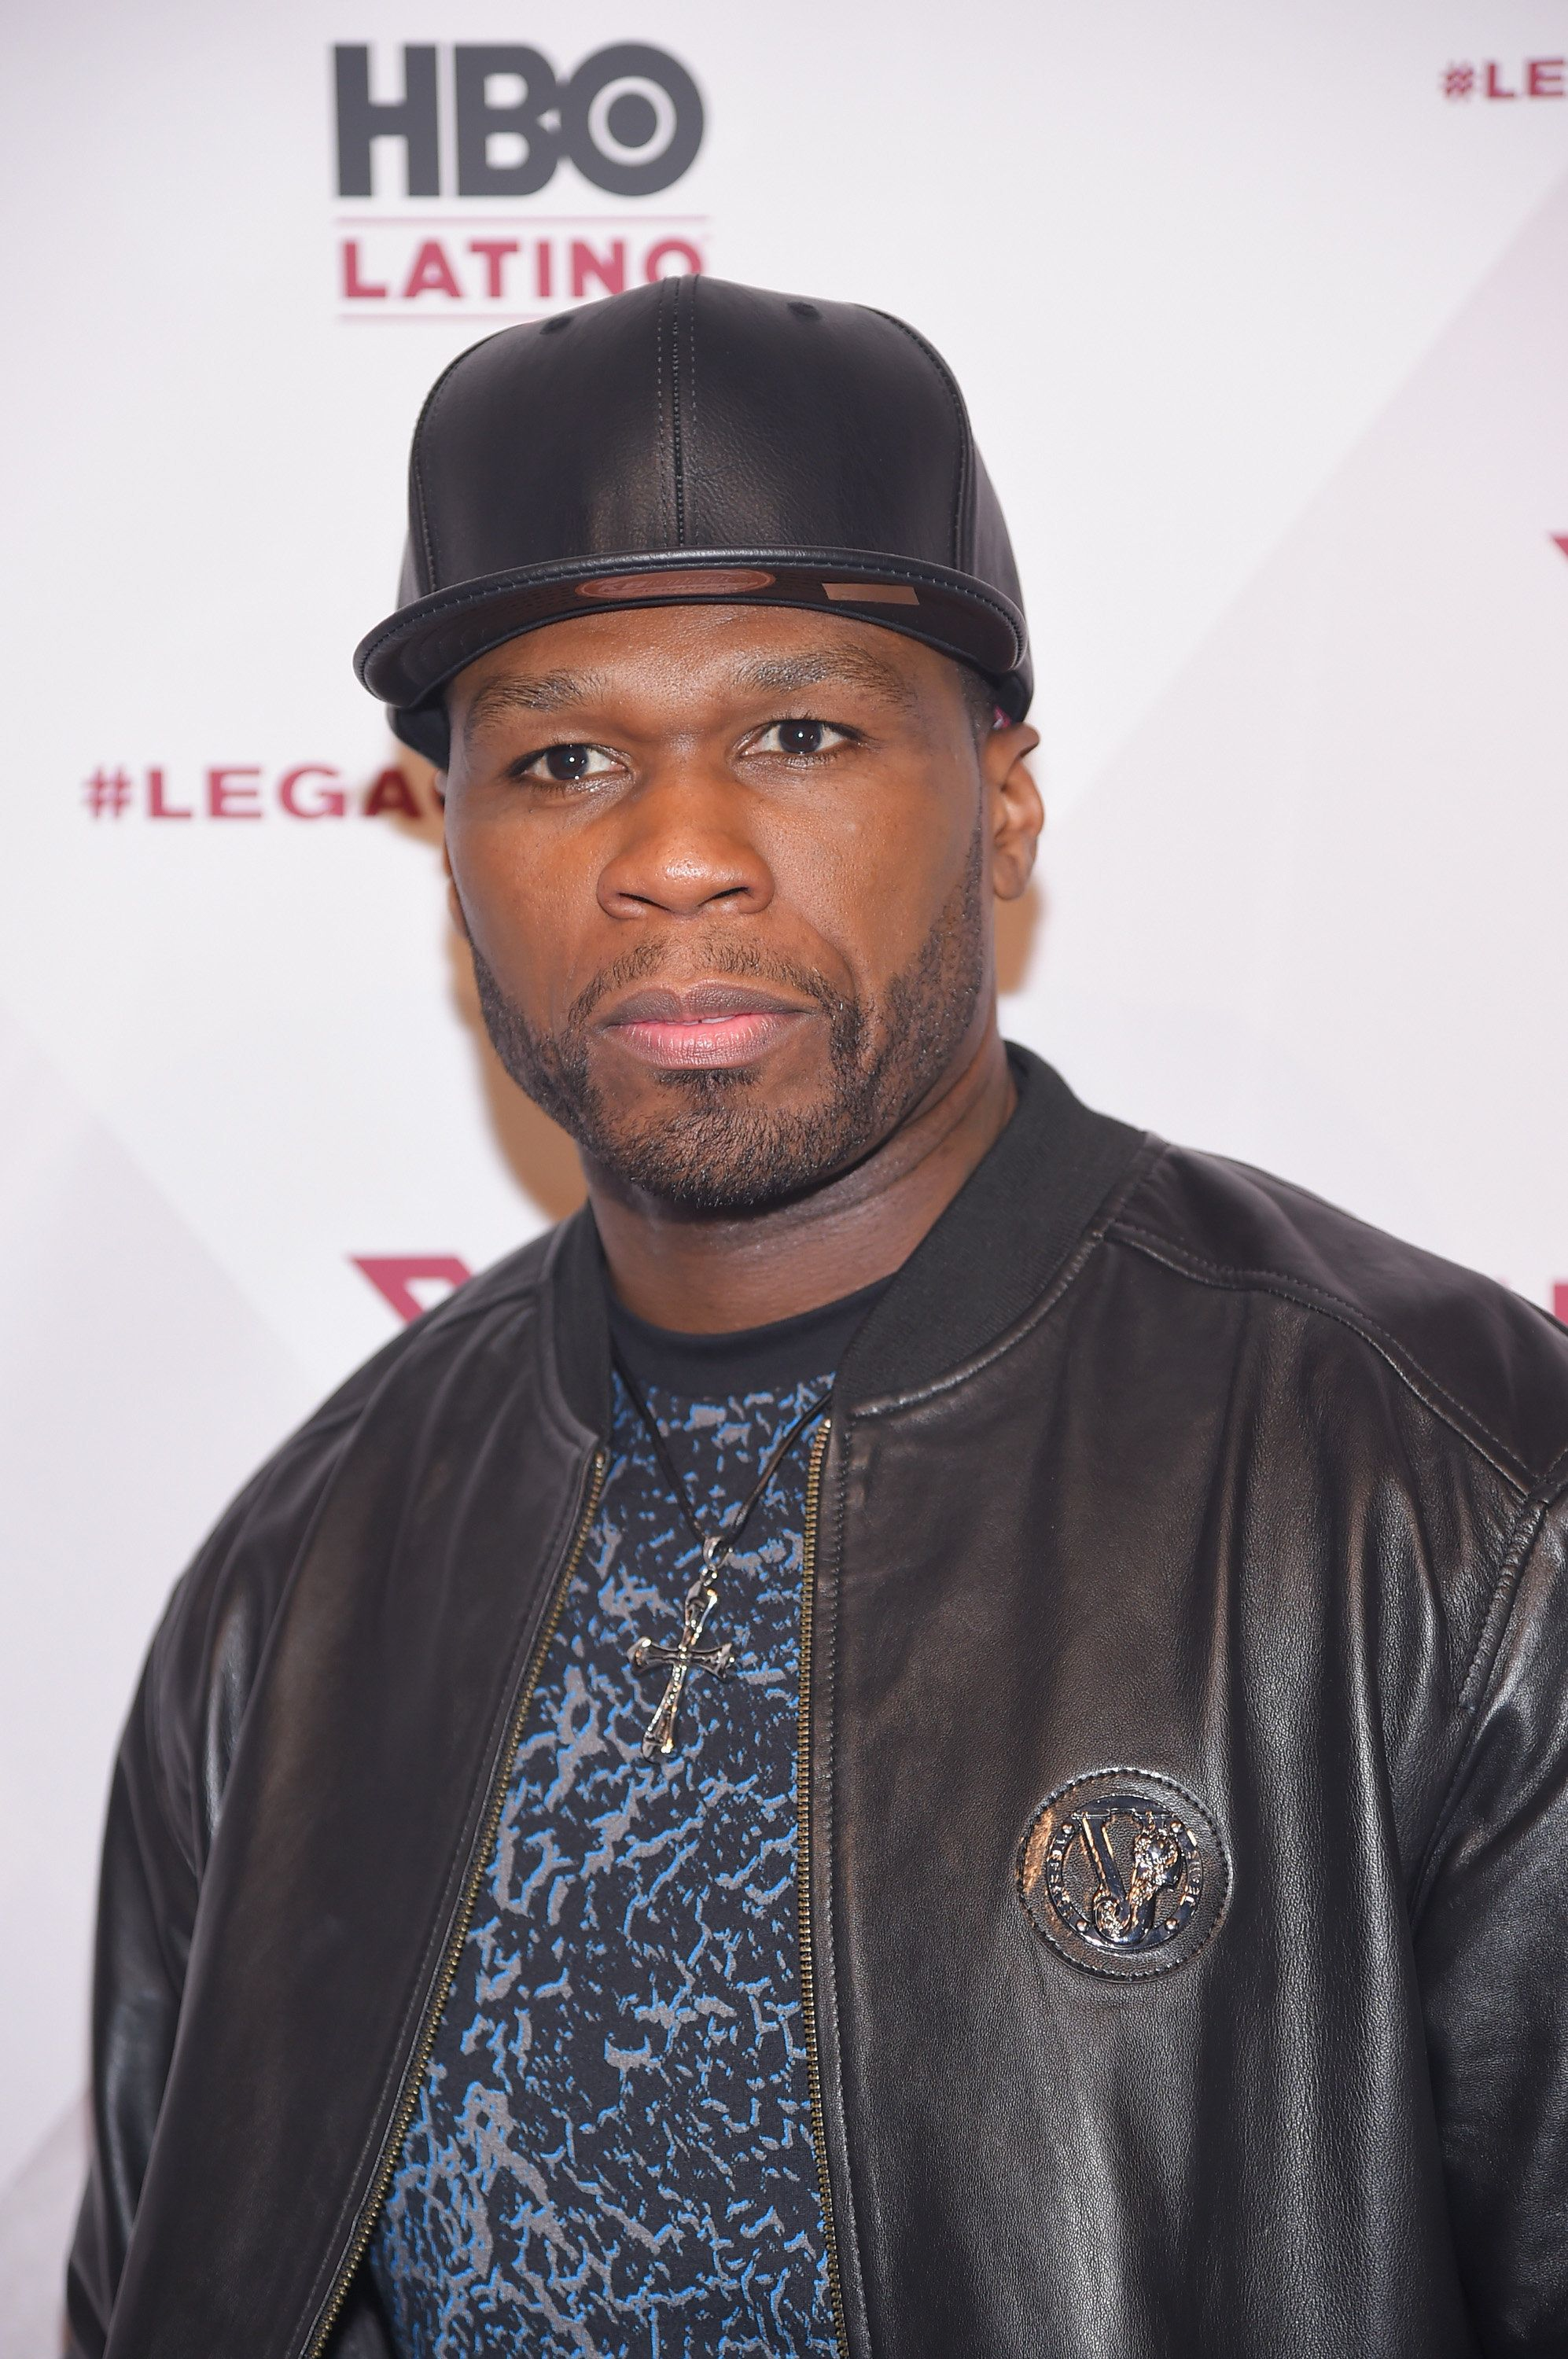 NEW YORK, NY - APRIL 07:  Rapper 50 Cent attends the HBO Latino red carpet premiere of the 'Camino Al Concierto and Legacy: De Lider a Leyenda' at Center 548 on April 7, 2015 in New York City.  (Photo by Michael Loccisano/Getty Images for HBO Latino)